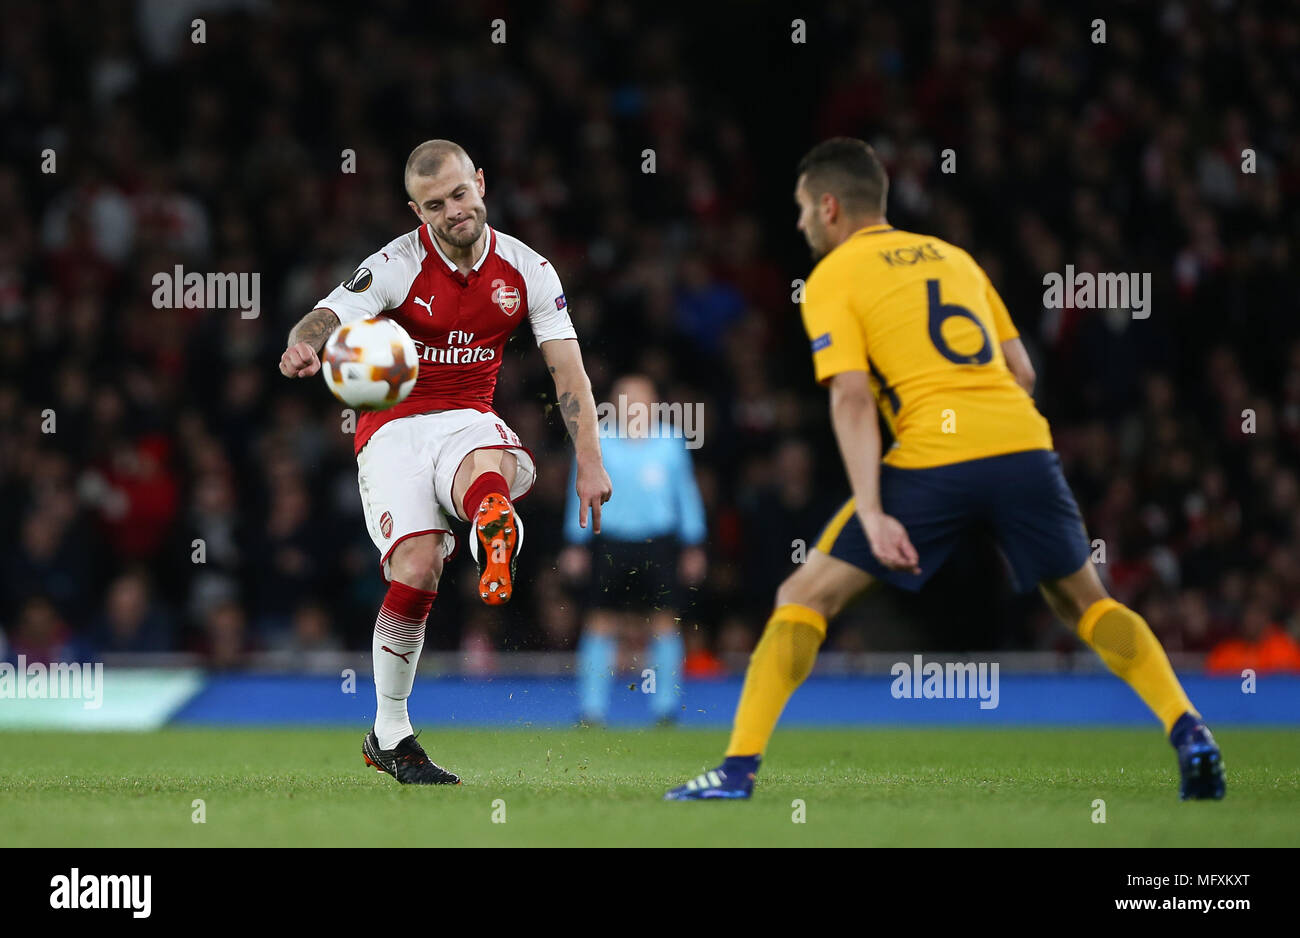 London, UK. 26th April, 2018. Jack Wilshere of Arsenal passes the ball during the UEFA Europa League Semi Final first leg match between Arsenal and Atletico Madrid at Emirates Stadium on April 26th 2018 in London, England. Credit: PHC Images/Alamy Live News - Stock Image